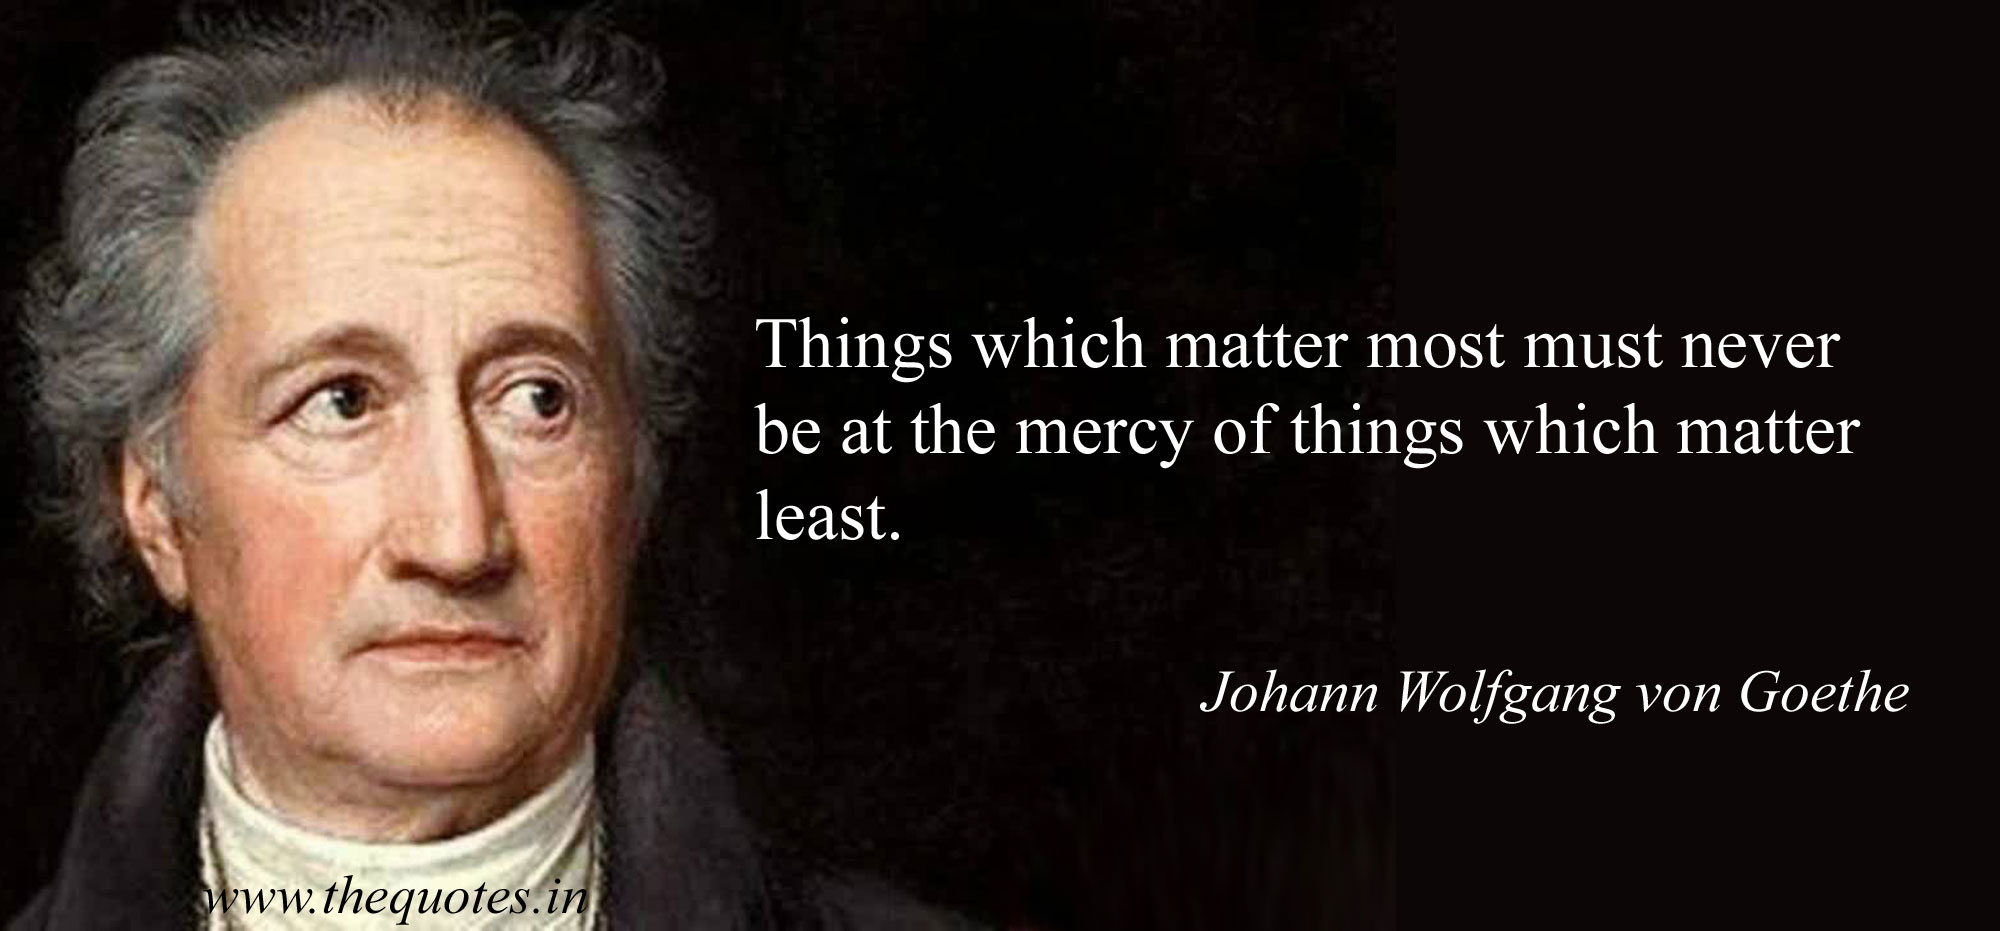 Awesome Johann Wolfgang Von Goethe Quotes